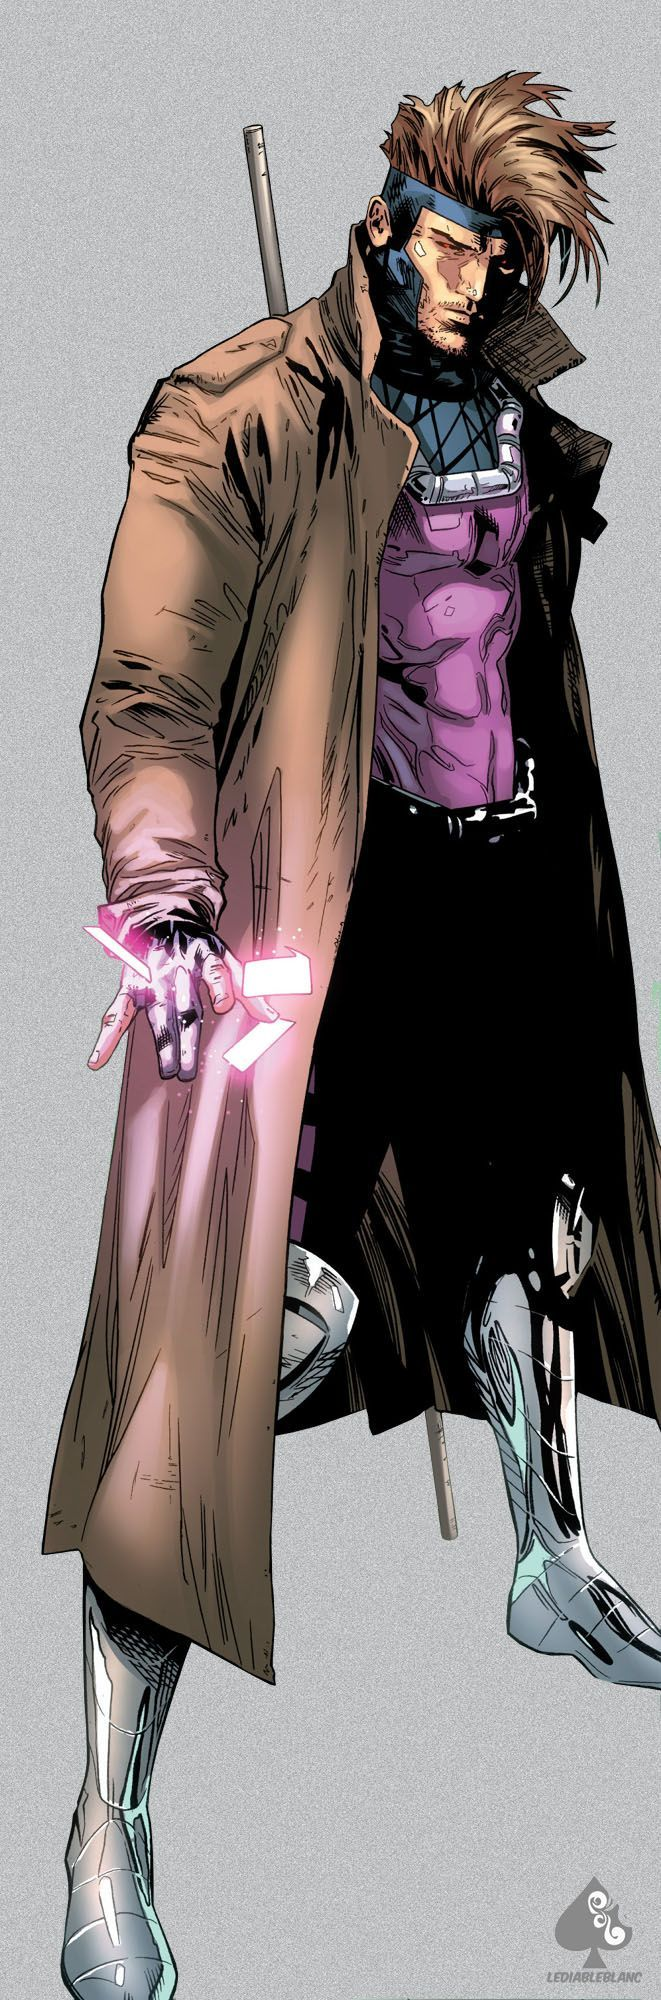 Gambit may favorite xmen !!! I love him they need a gambit movie! (Never should have cast Channig Tatum!)